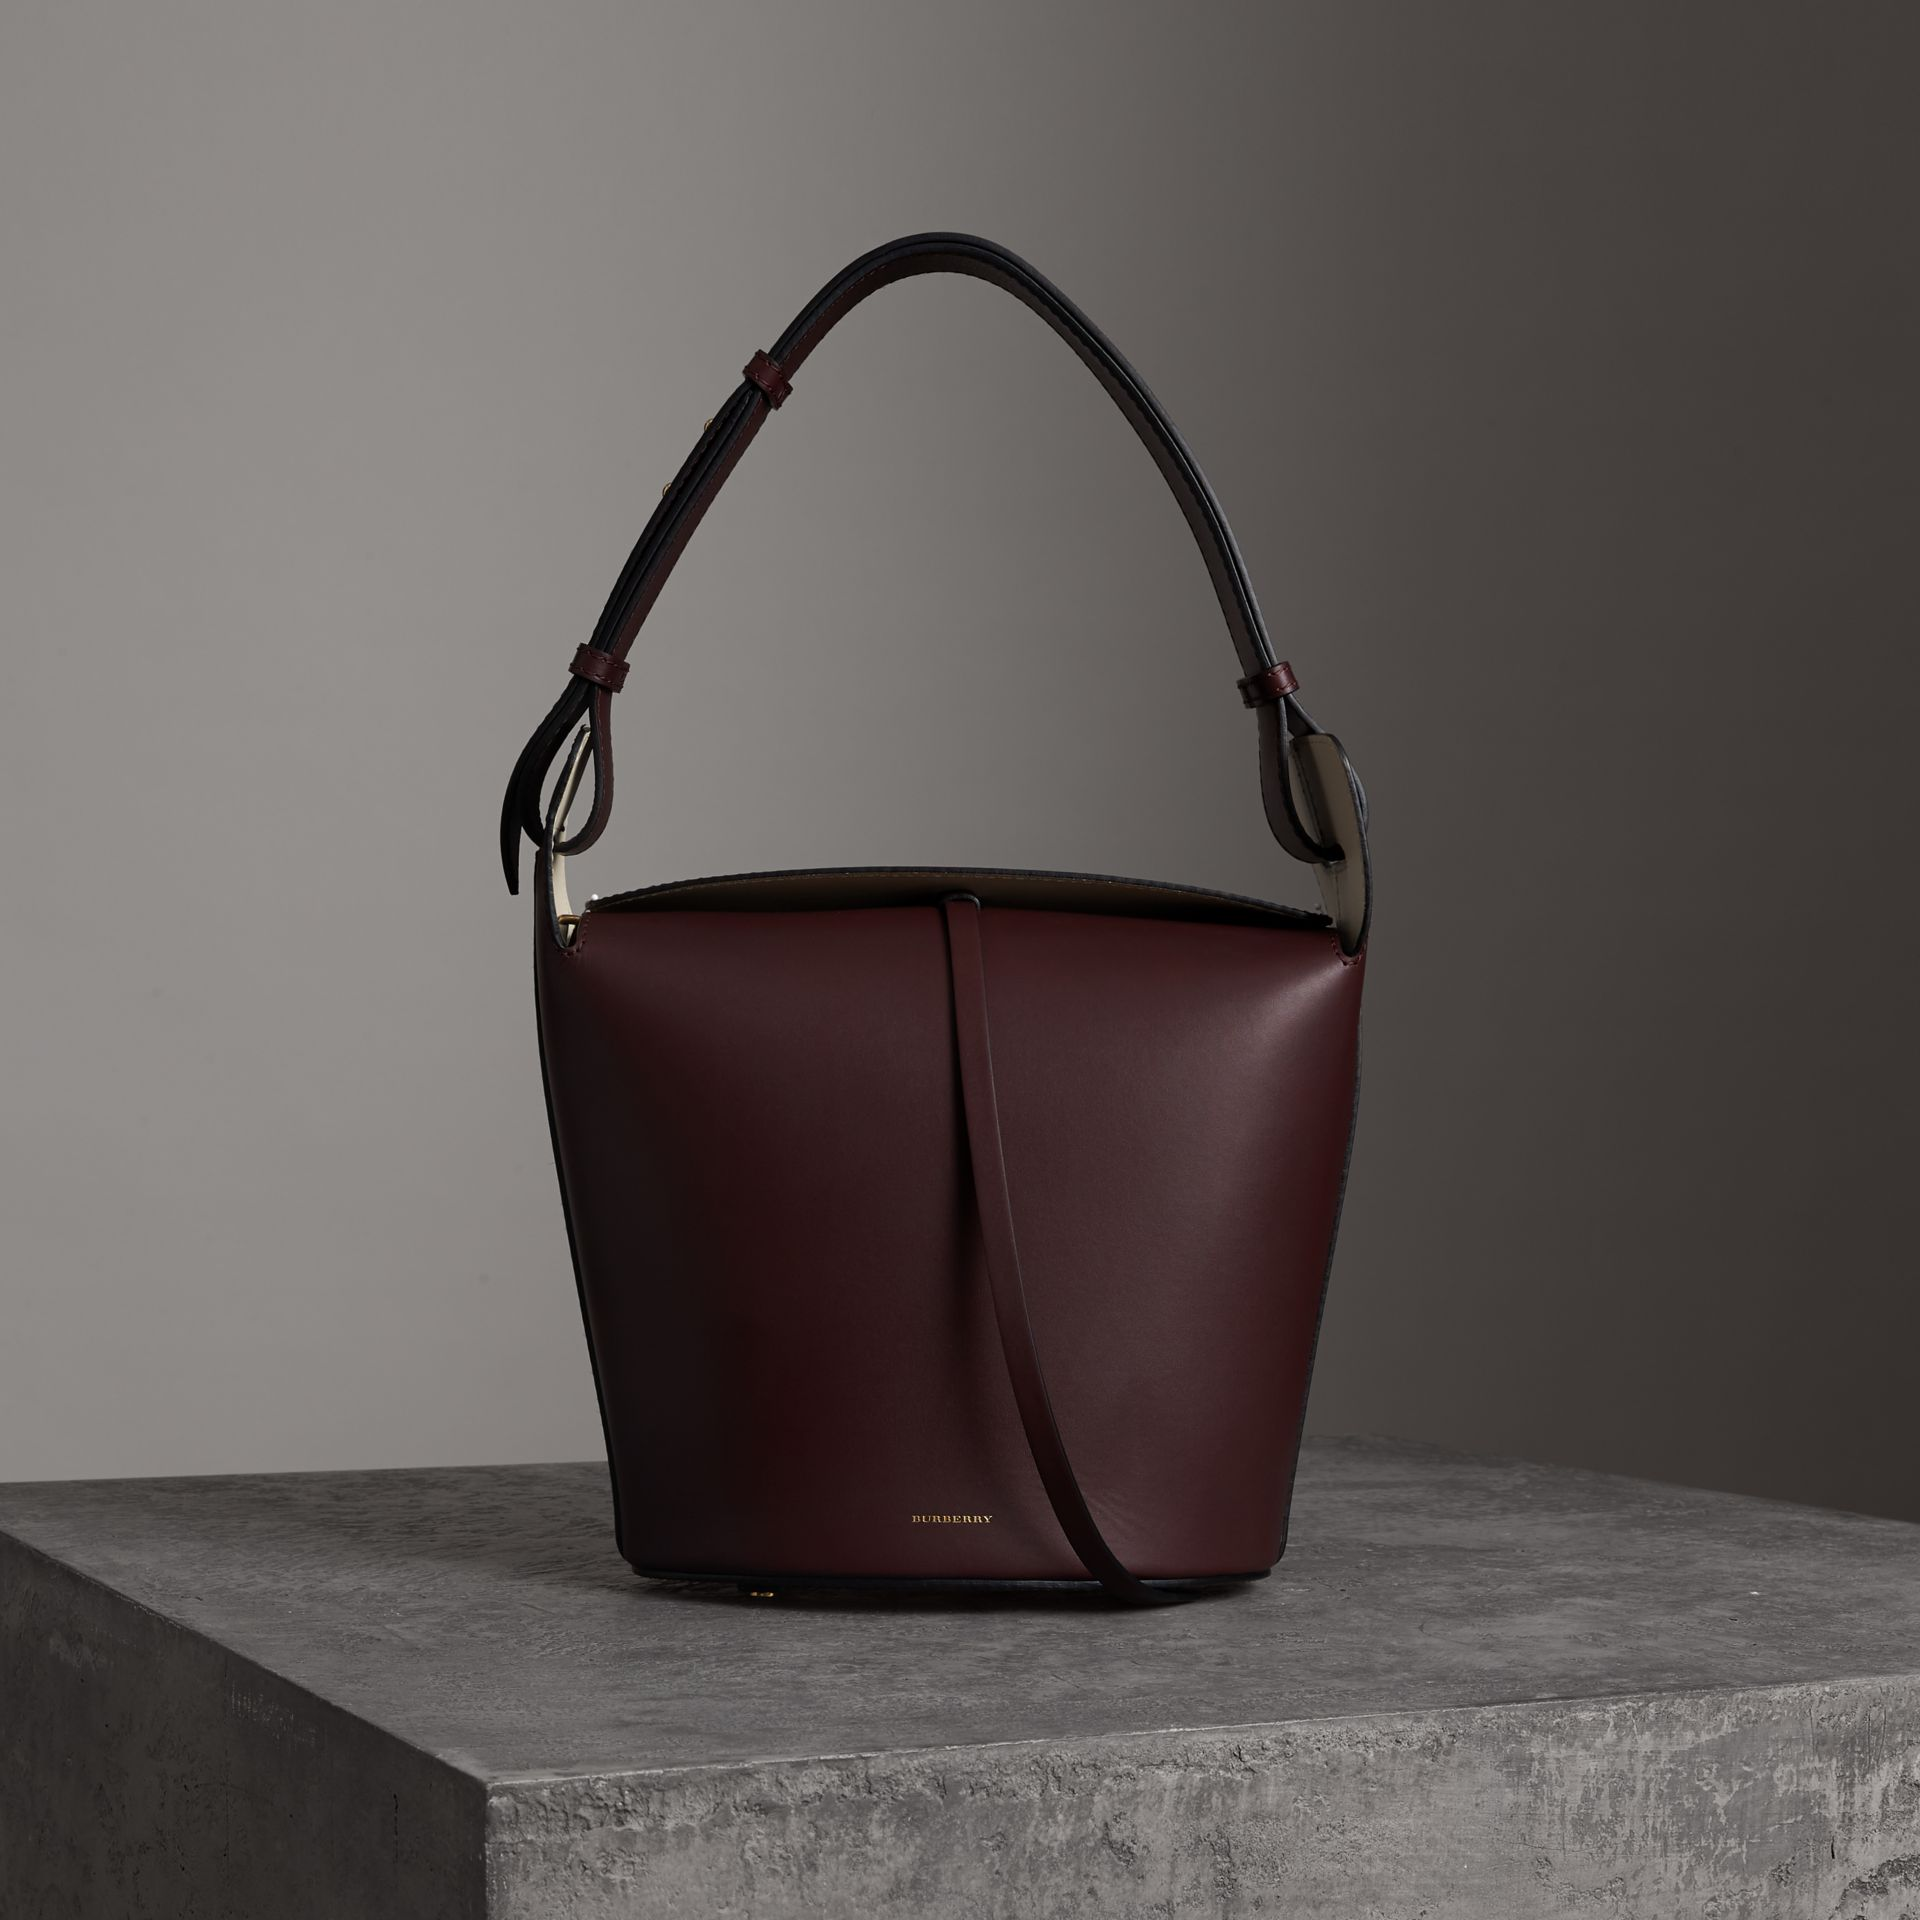 Burberry The Medium Leather Bucket Bag In Red. First seen in May 2018.  Product  Strap  10.8 in. Depth  7.5 in. Width  11.2 in. Height  13 in 550a9e26a2